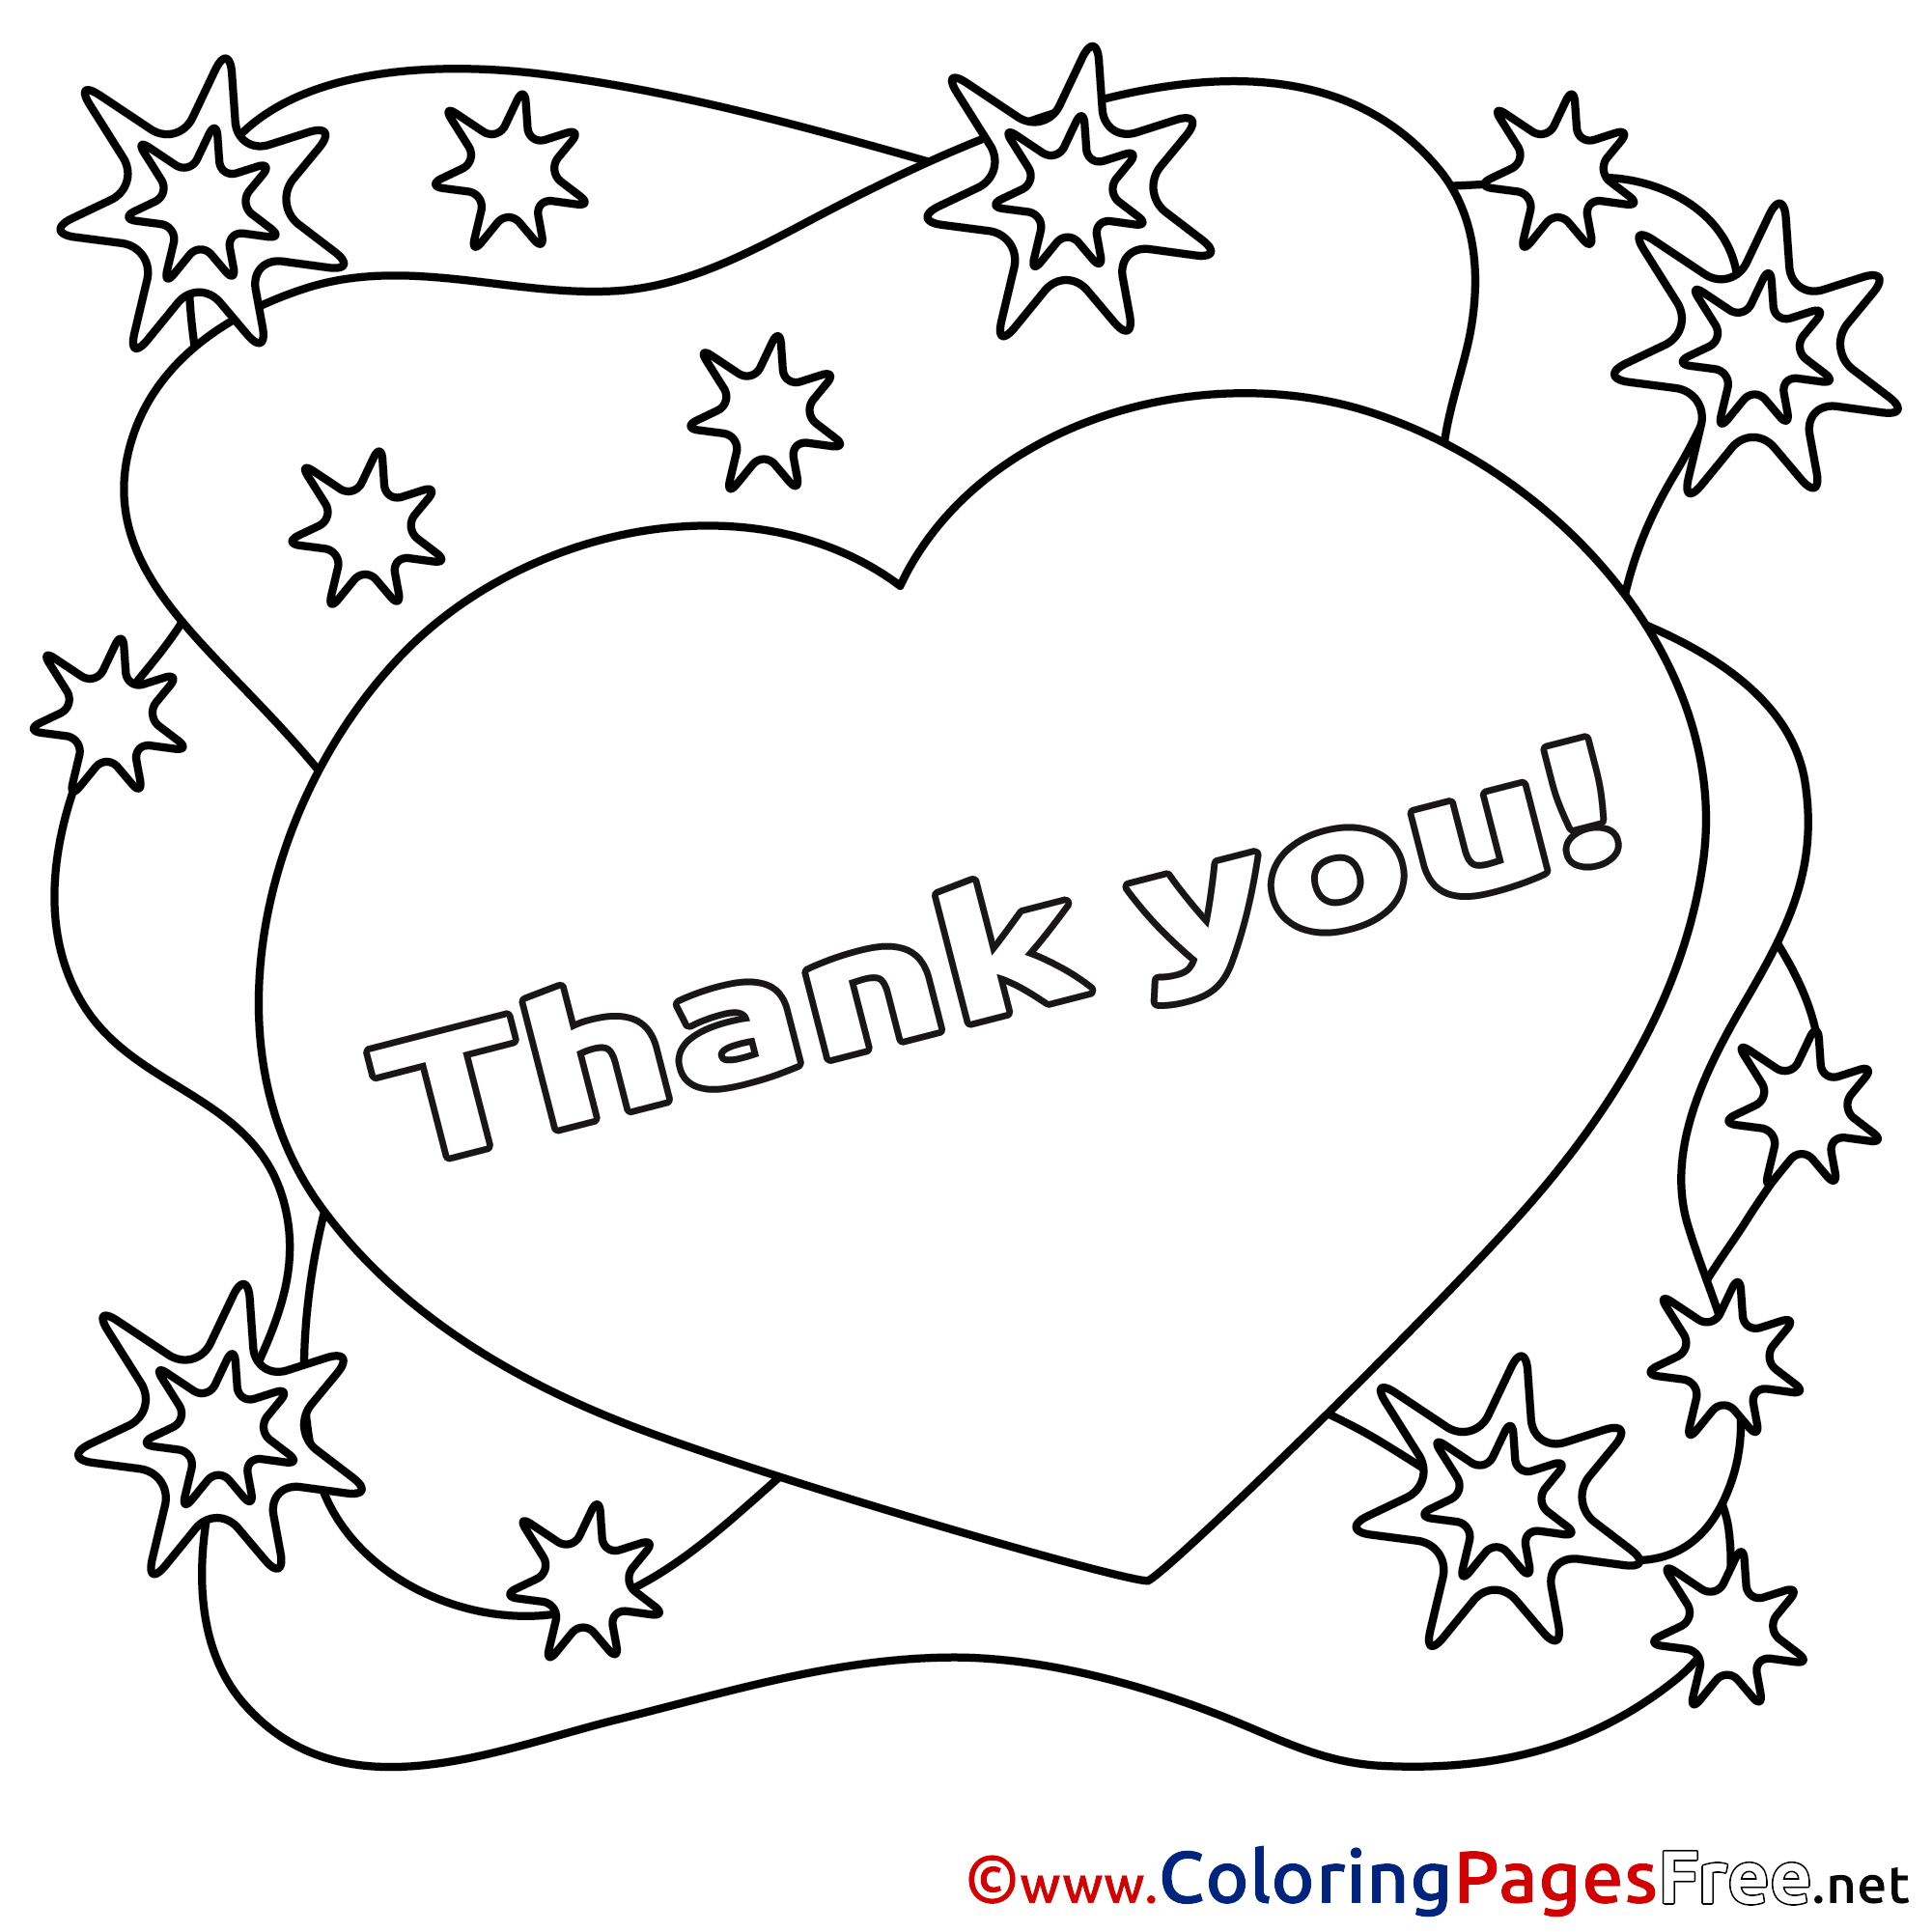 image regarding Thank You Teacher Free Printable identified as Thank On your own Trainer Coloring Web pages at  No cost